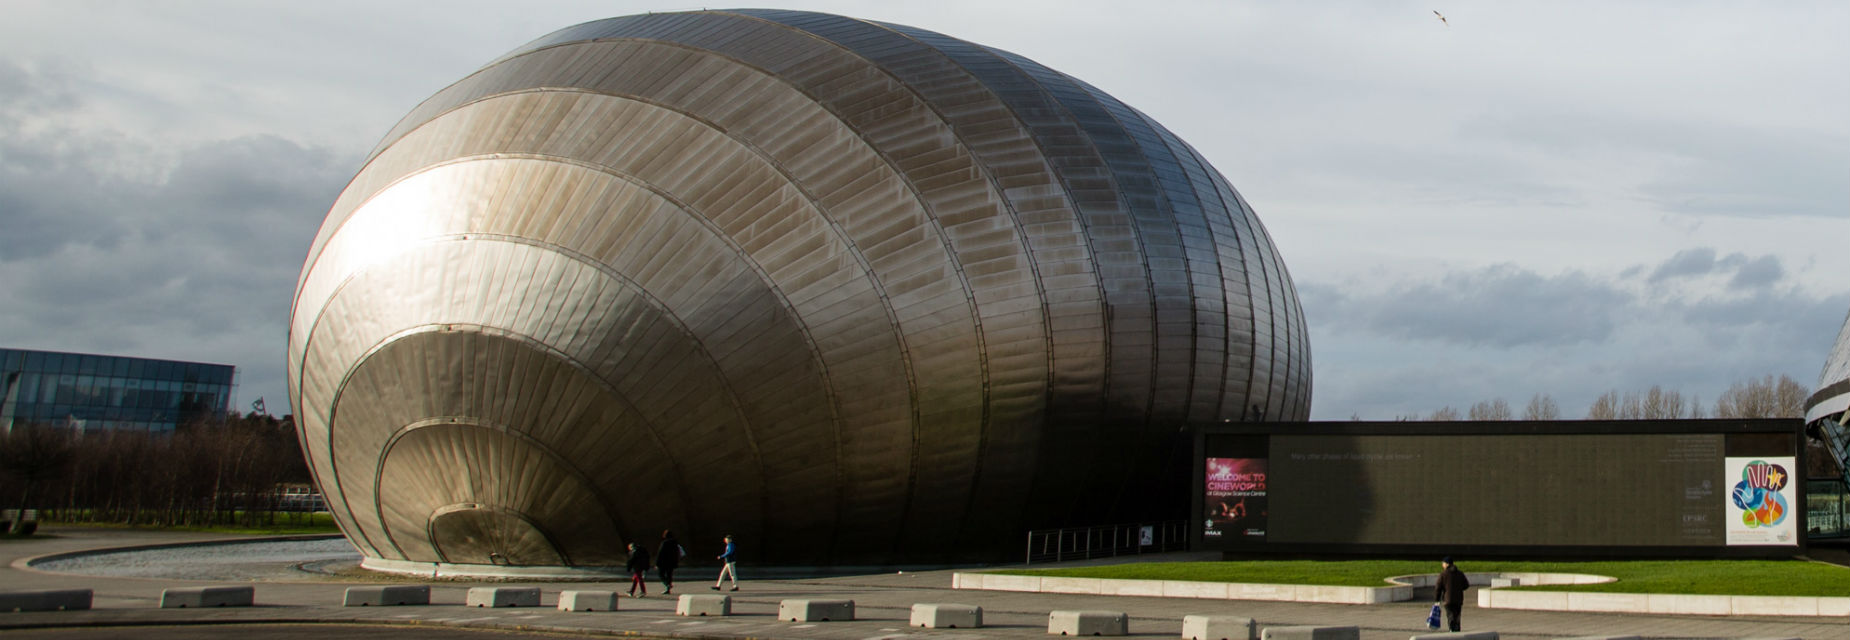 The Cineworld IMAX building at Glasgow Science Centre